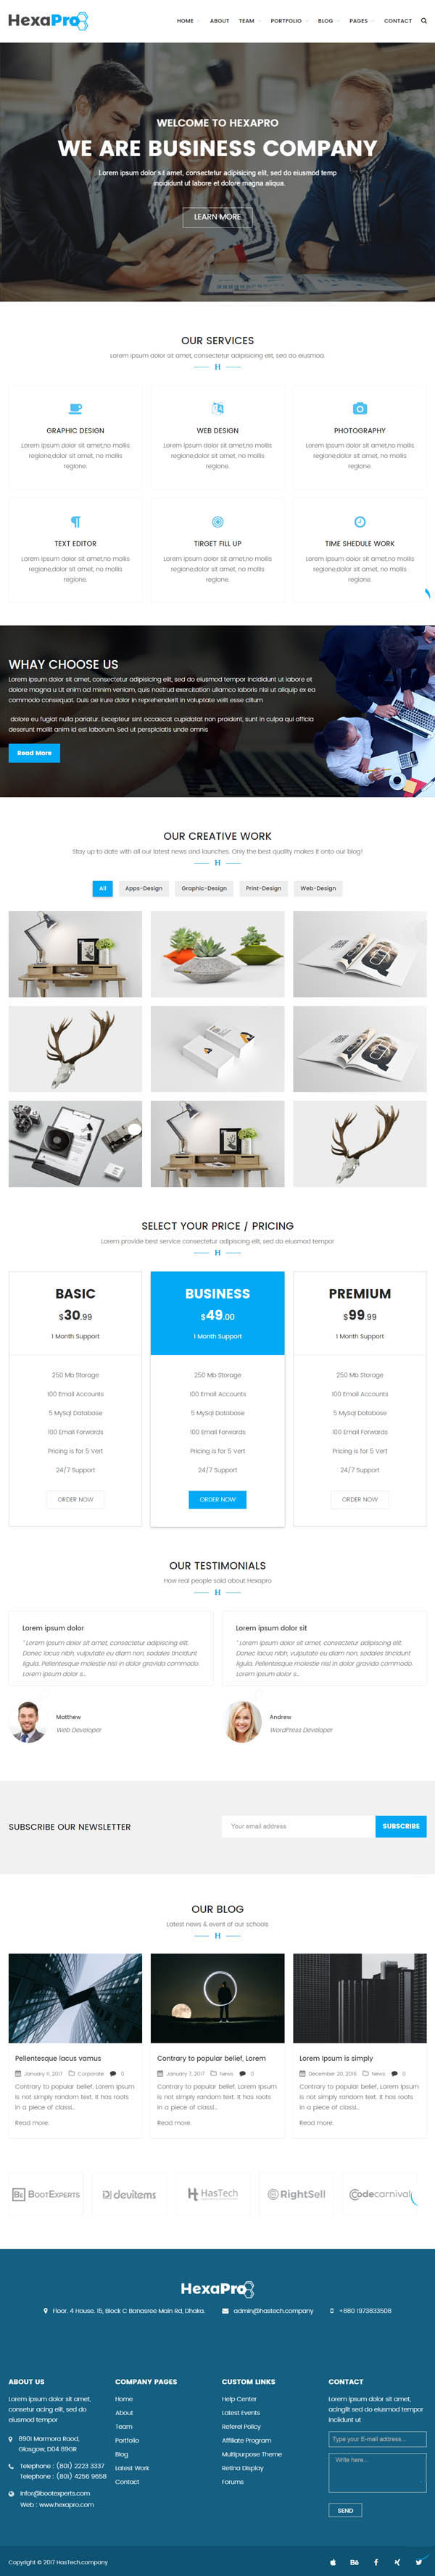 Hexapro : Corporate WordPress Theme